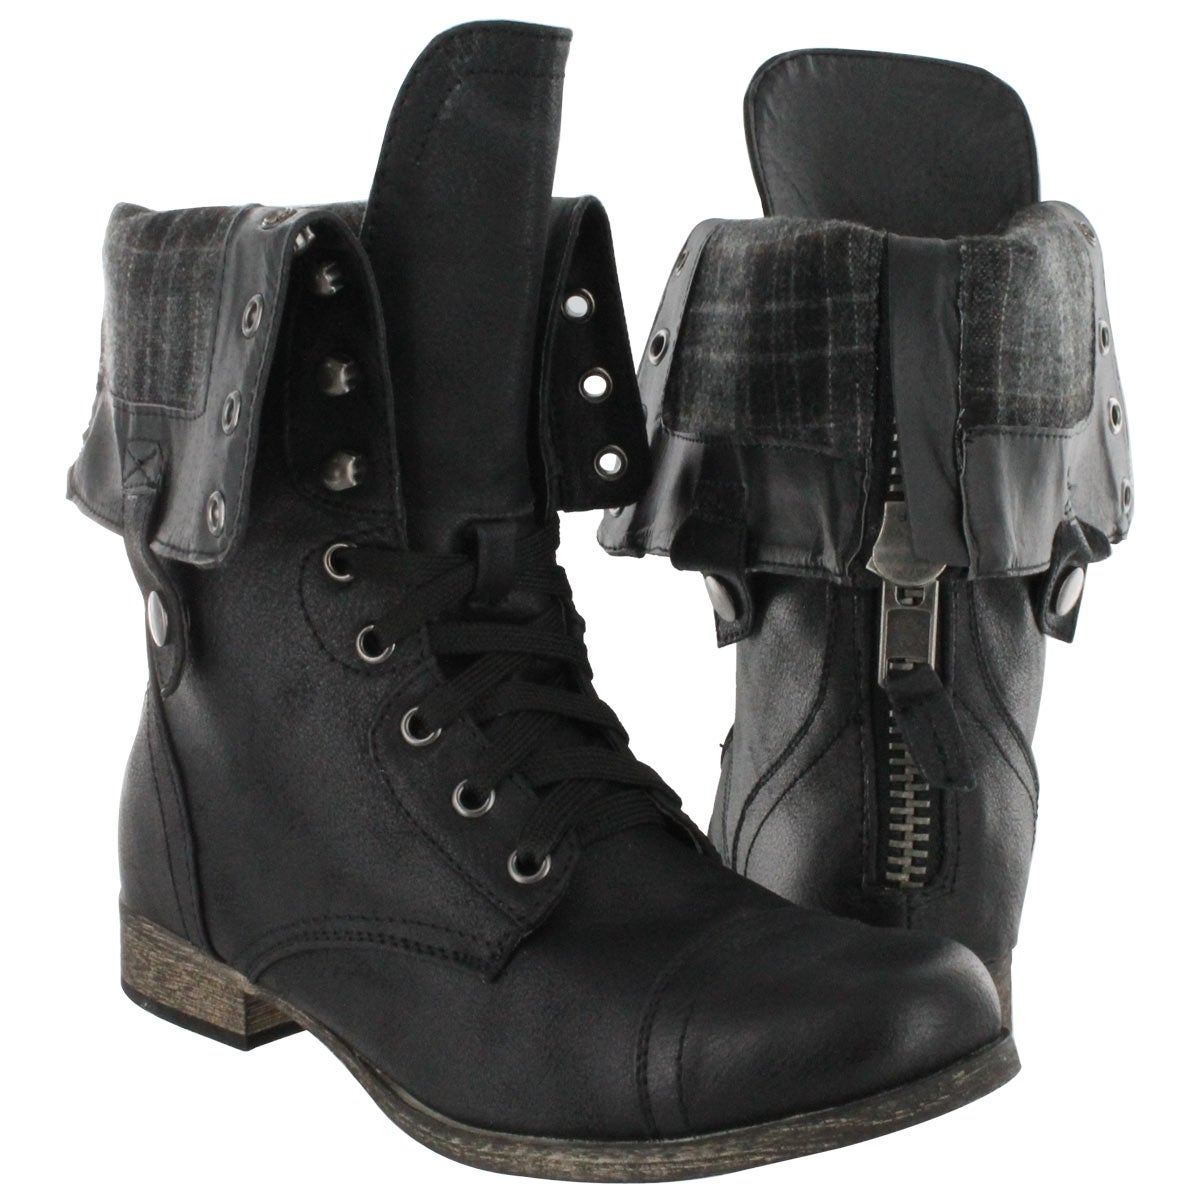 New  Black Combat Boots Cute Shoes Boots Leather Lace Folding Over